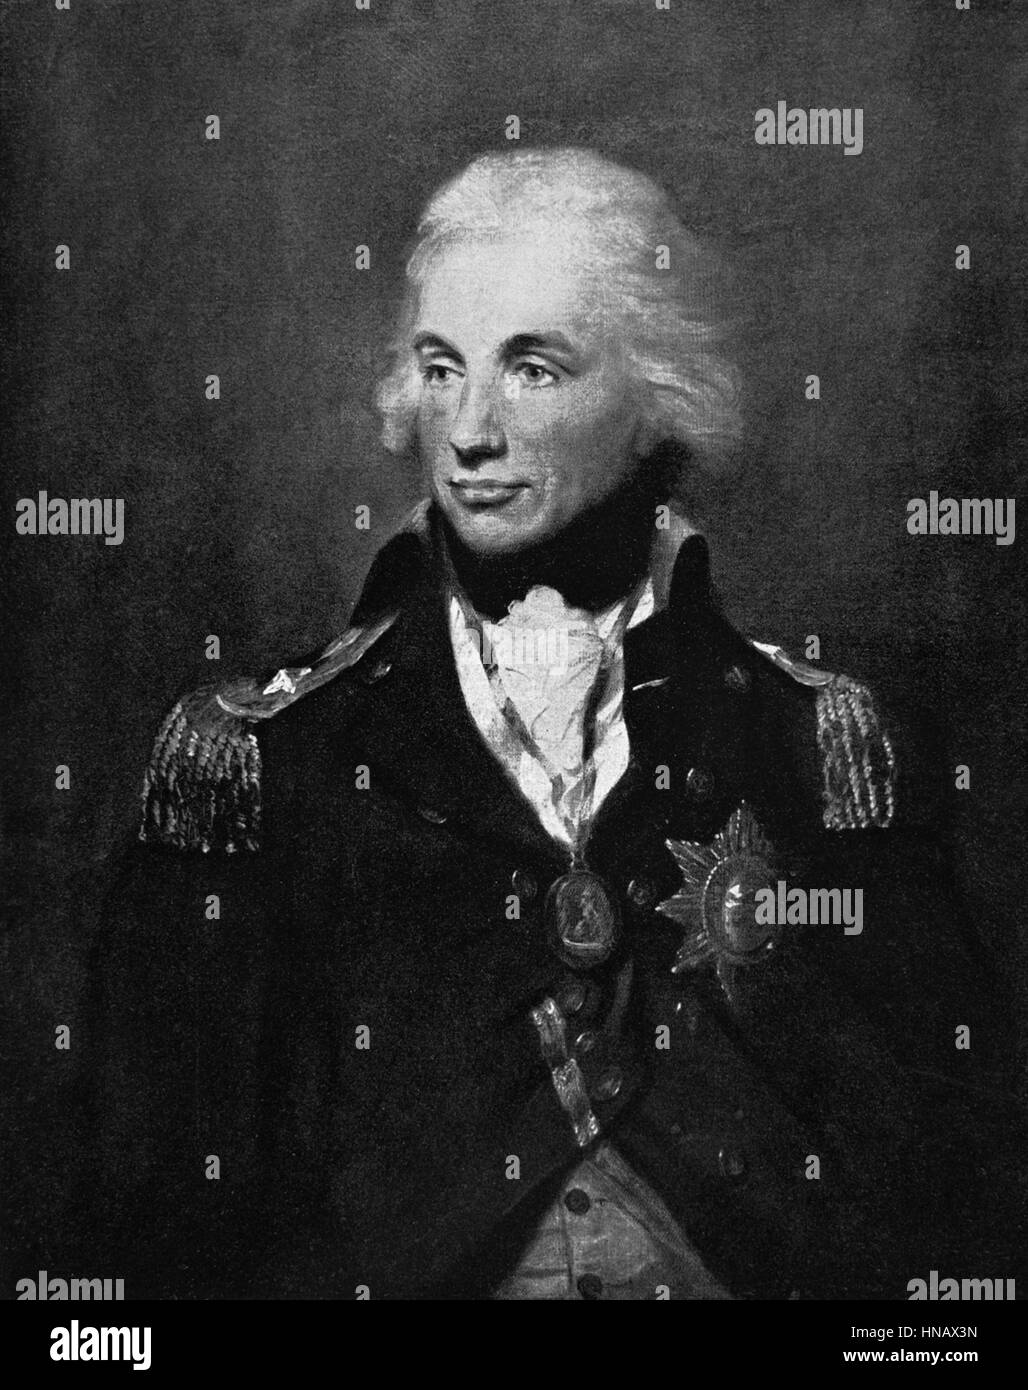 HORATIO VISCOUNT NELSON FLAG OFFICER & ADMIRAL (1800) - Stock Image